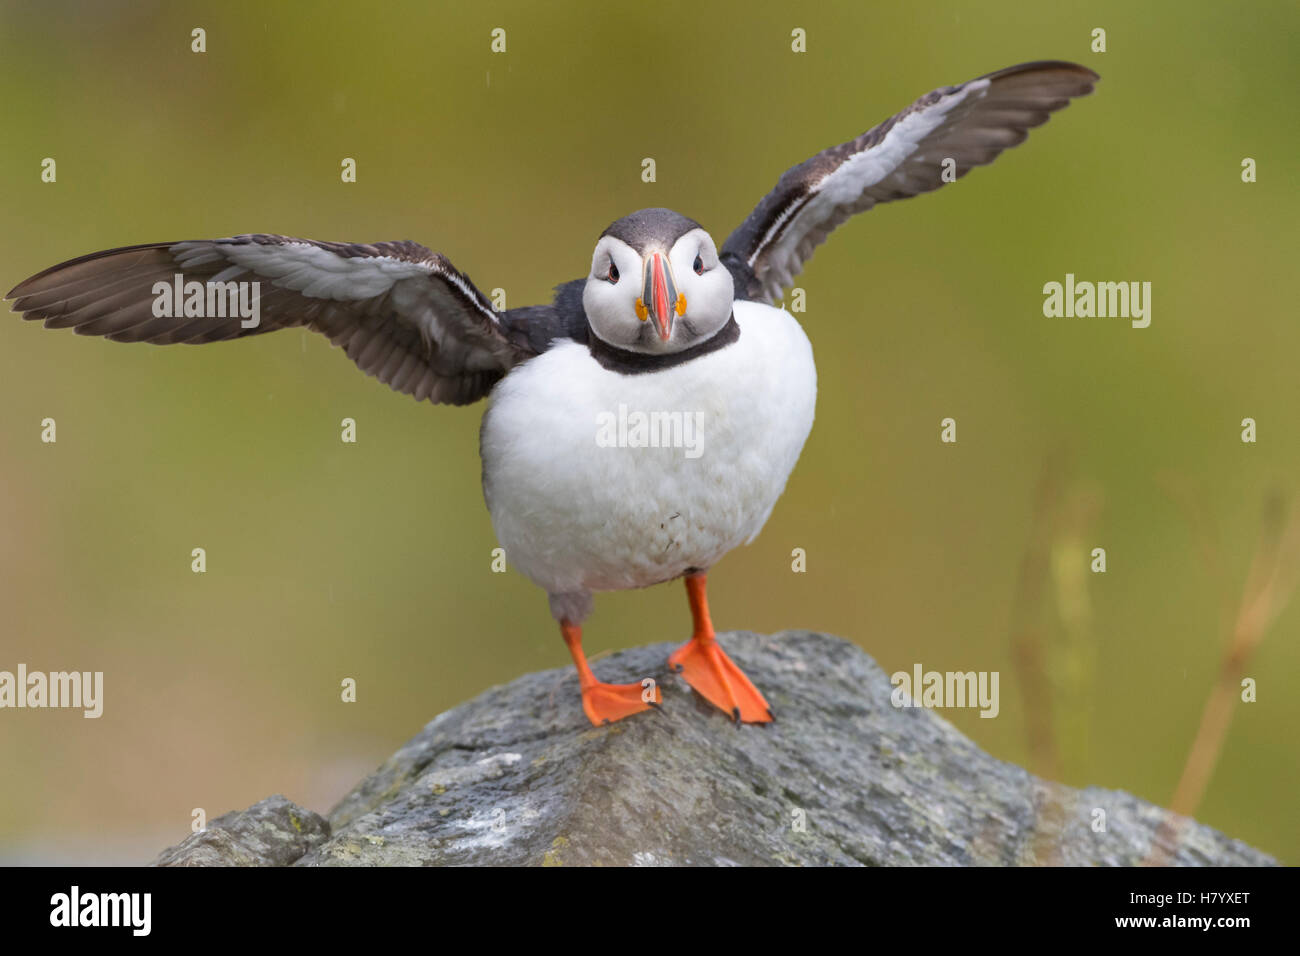 Puffin (Fratercula arctica) spreading wings, Runde bird island, Norway - Stock Image